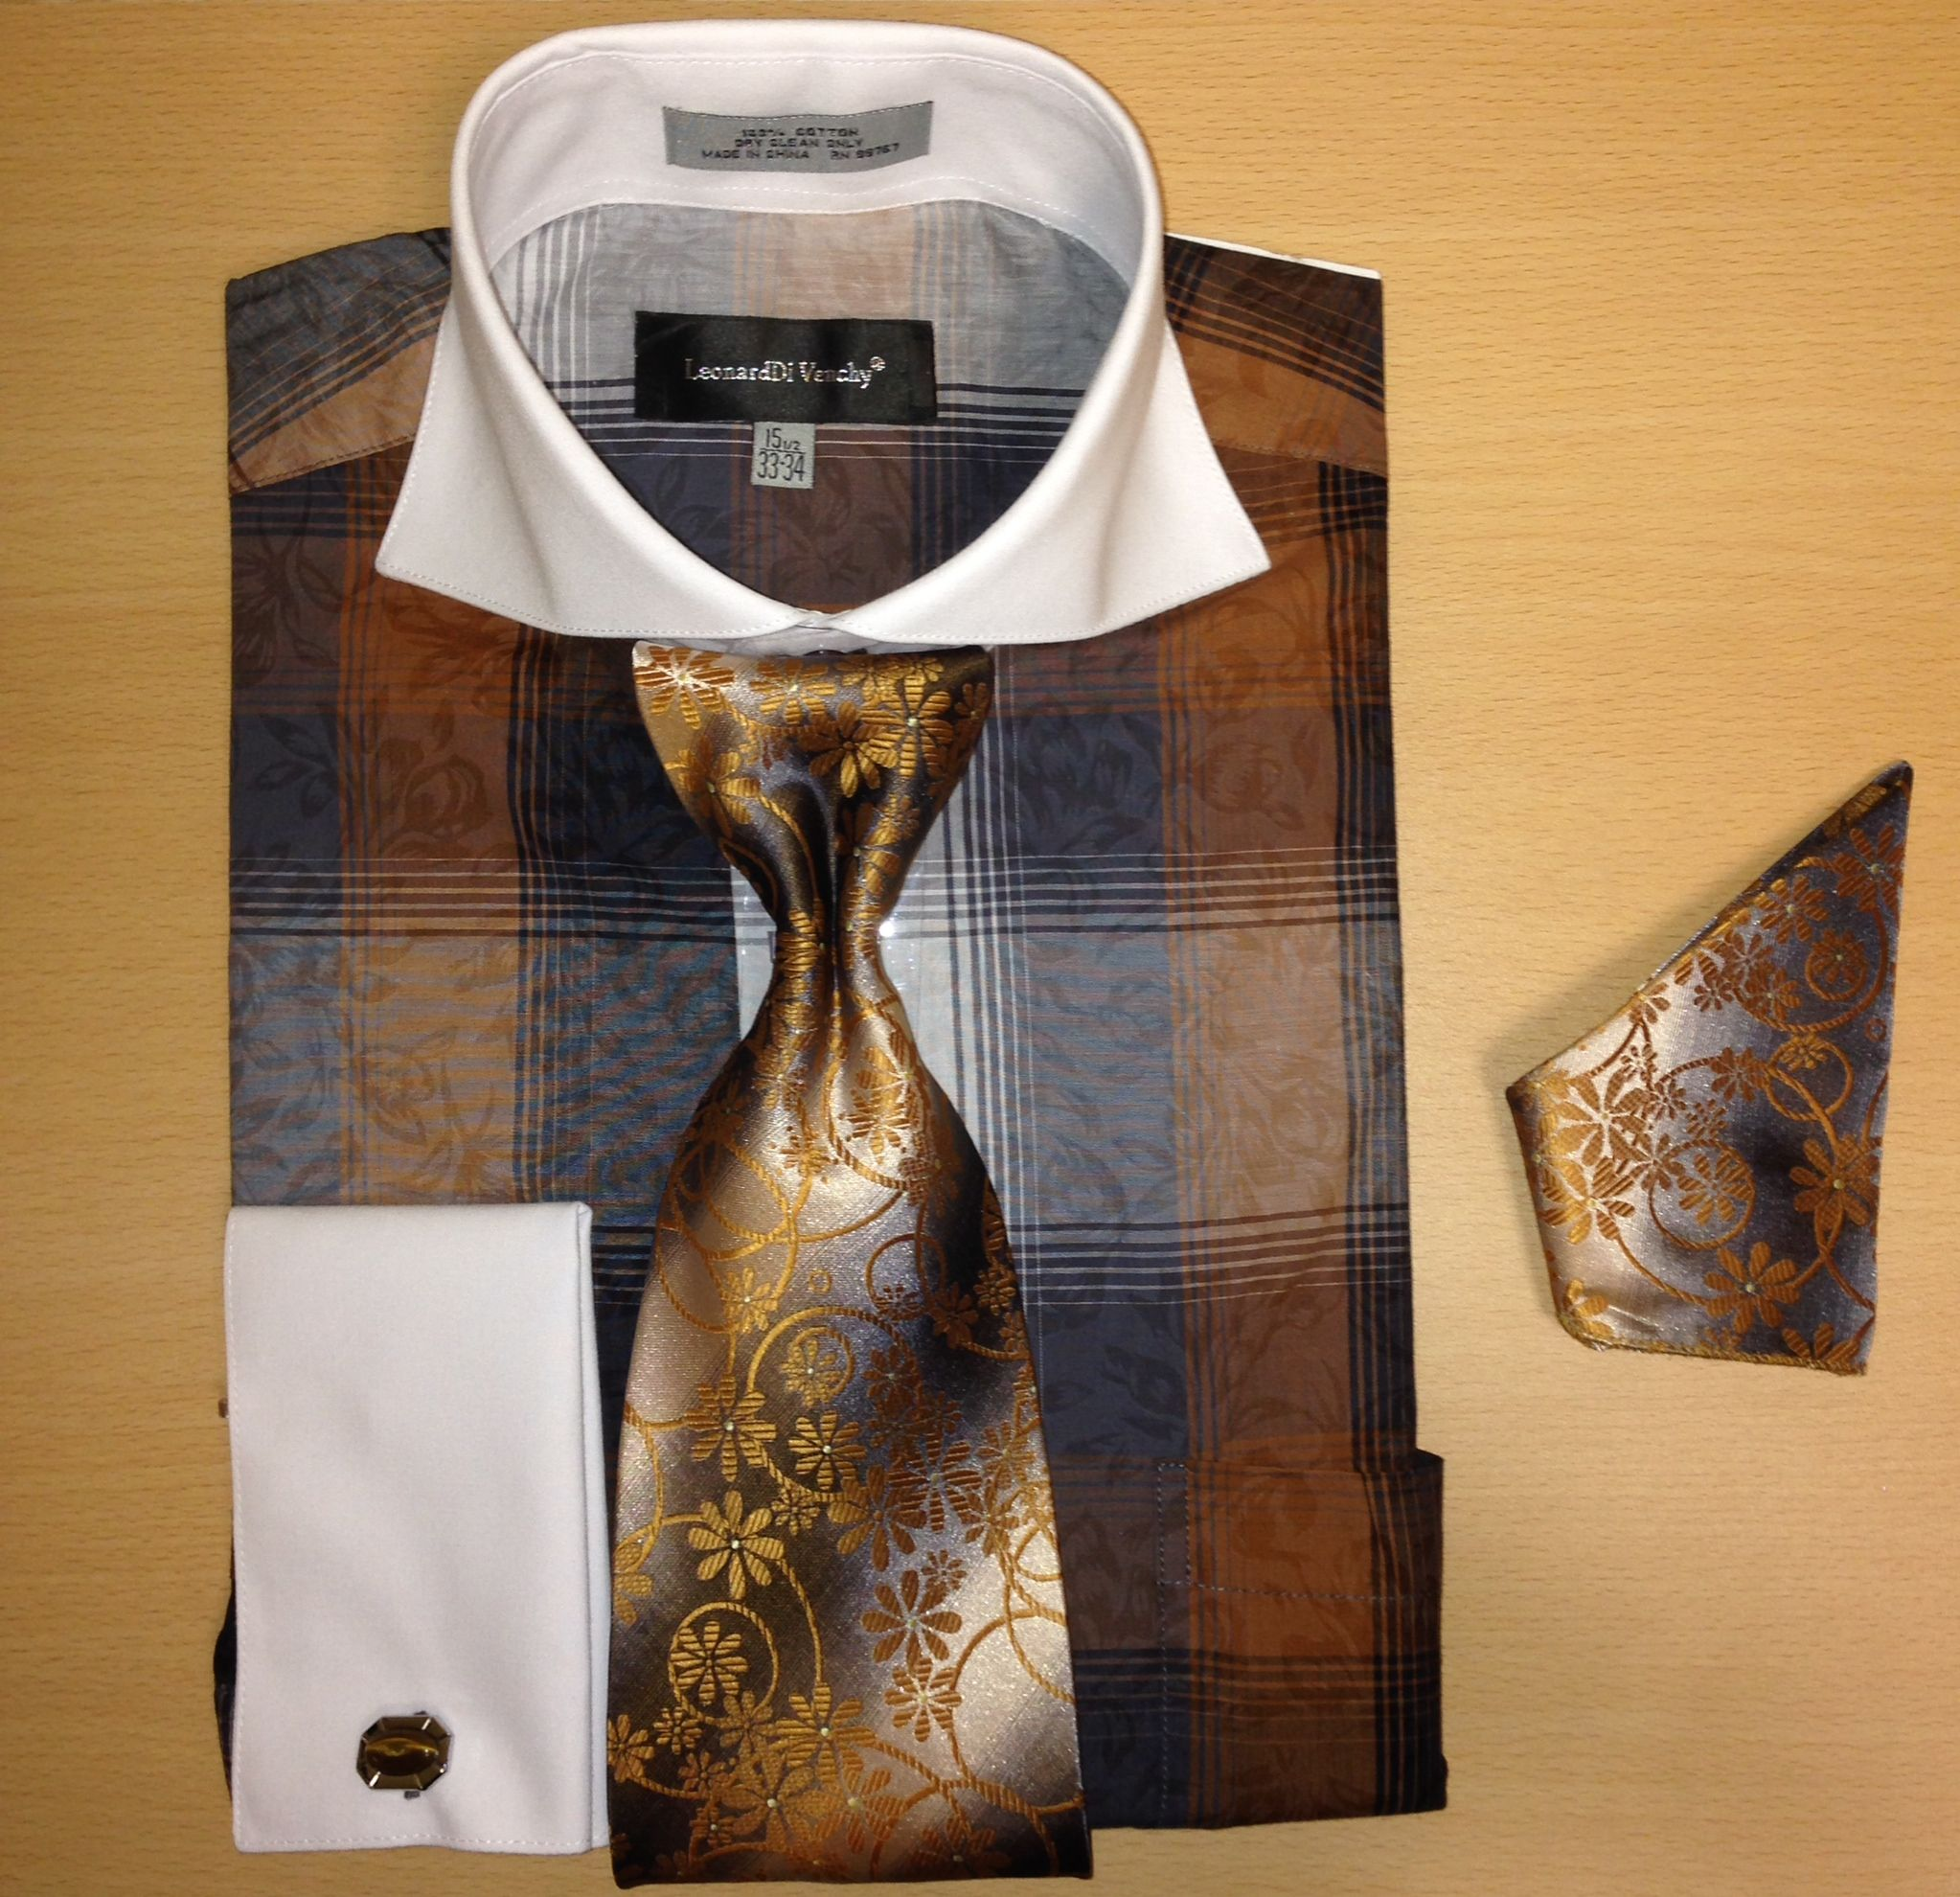 Men's Fashion Two-Tone w/ Paisley Mixture Cufflink Dress Shirt Set - Brown to Black